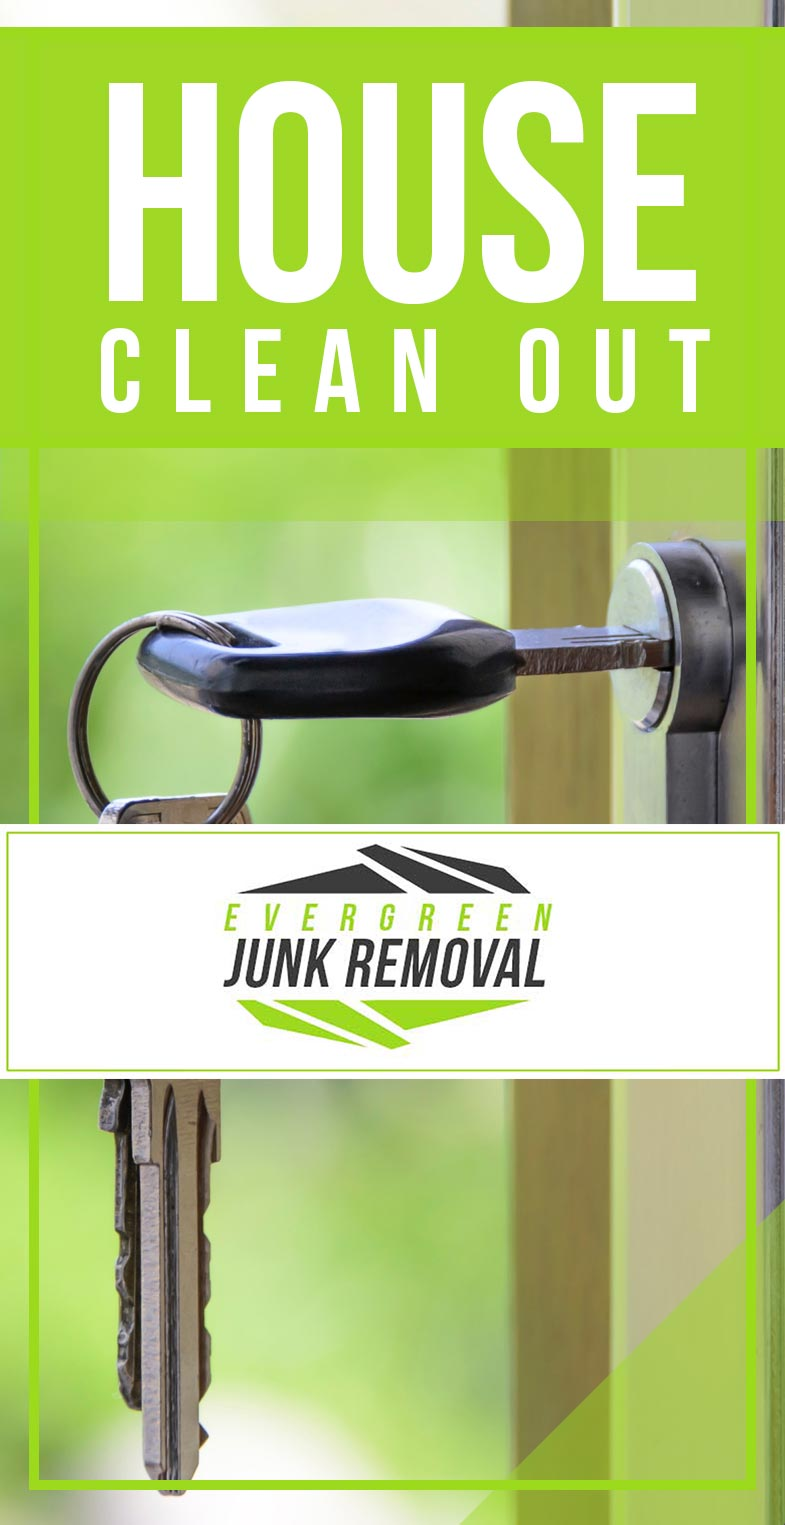 Junk Removal Golf House Clean Out